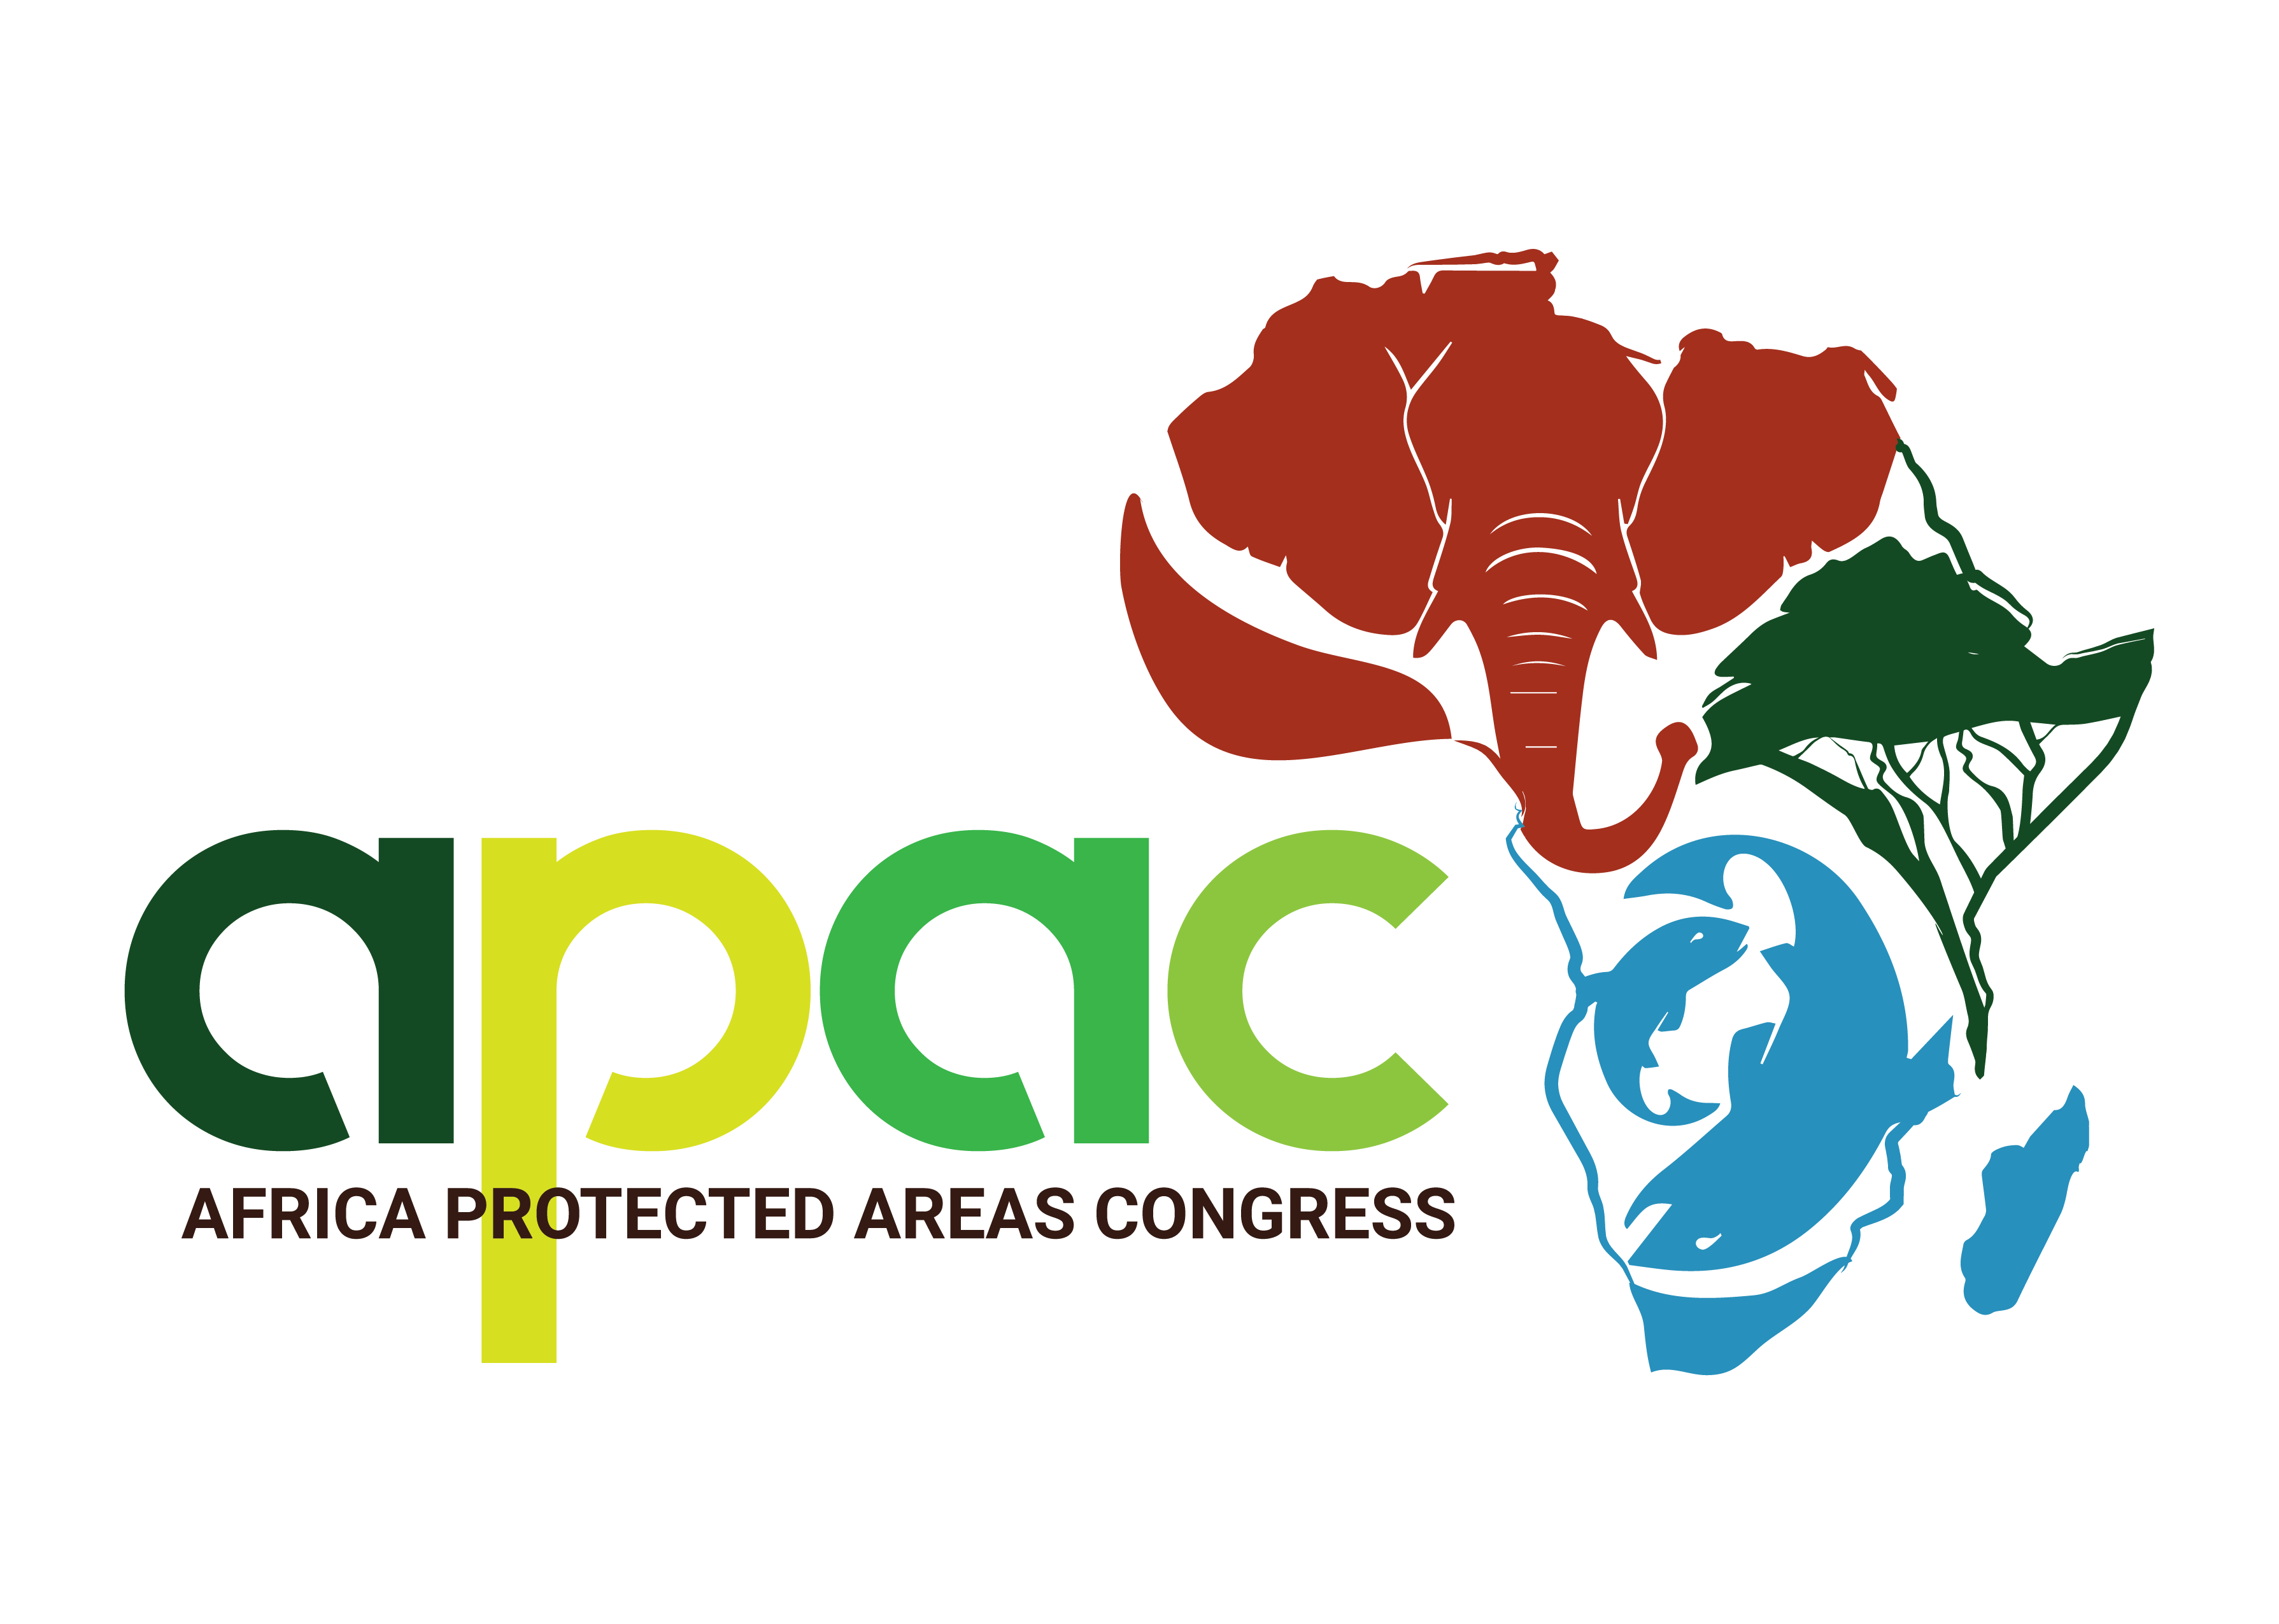 Africa Protected Areas Congress